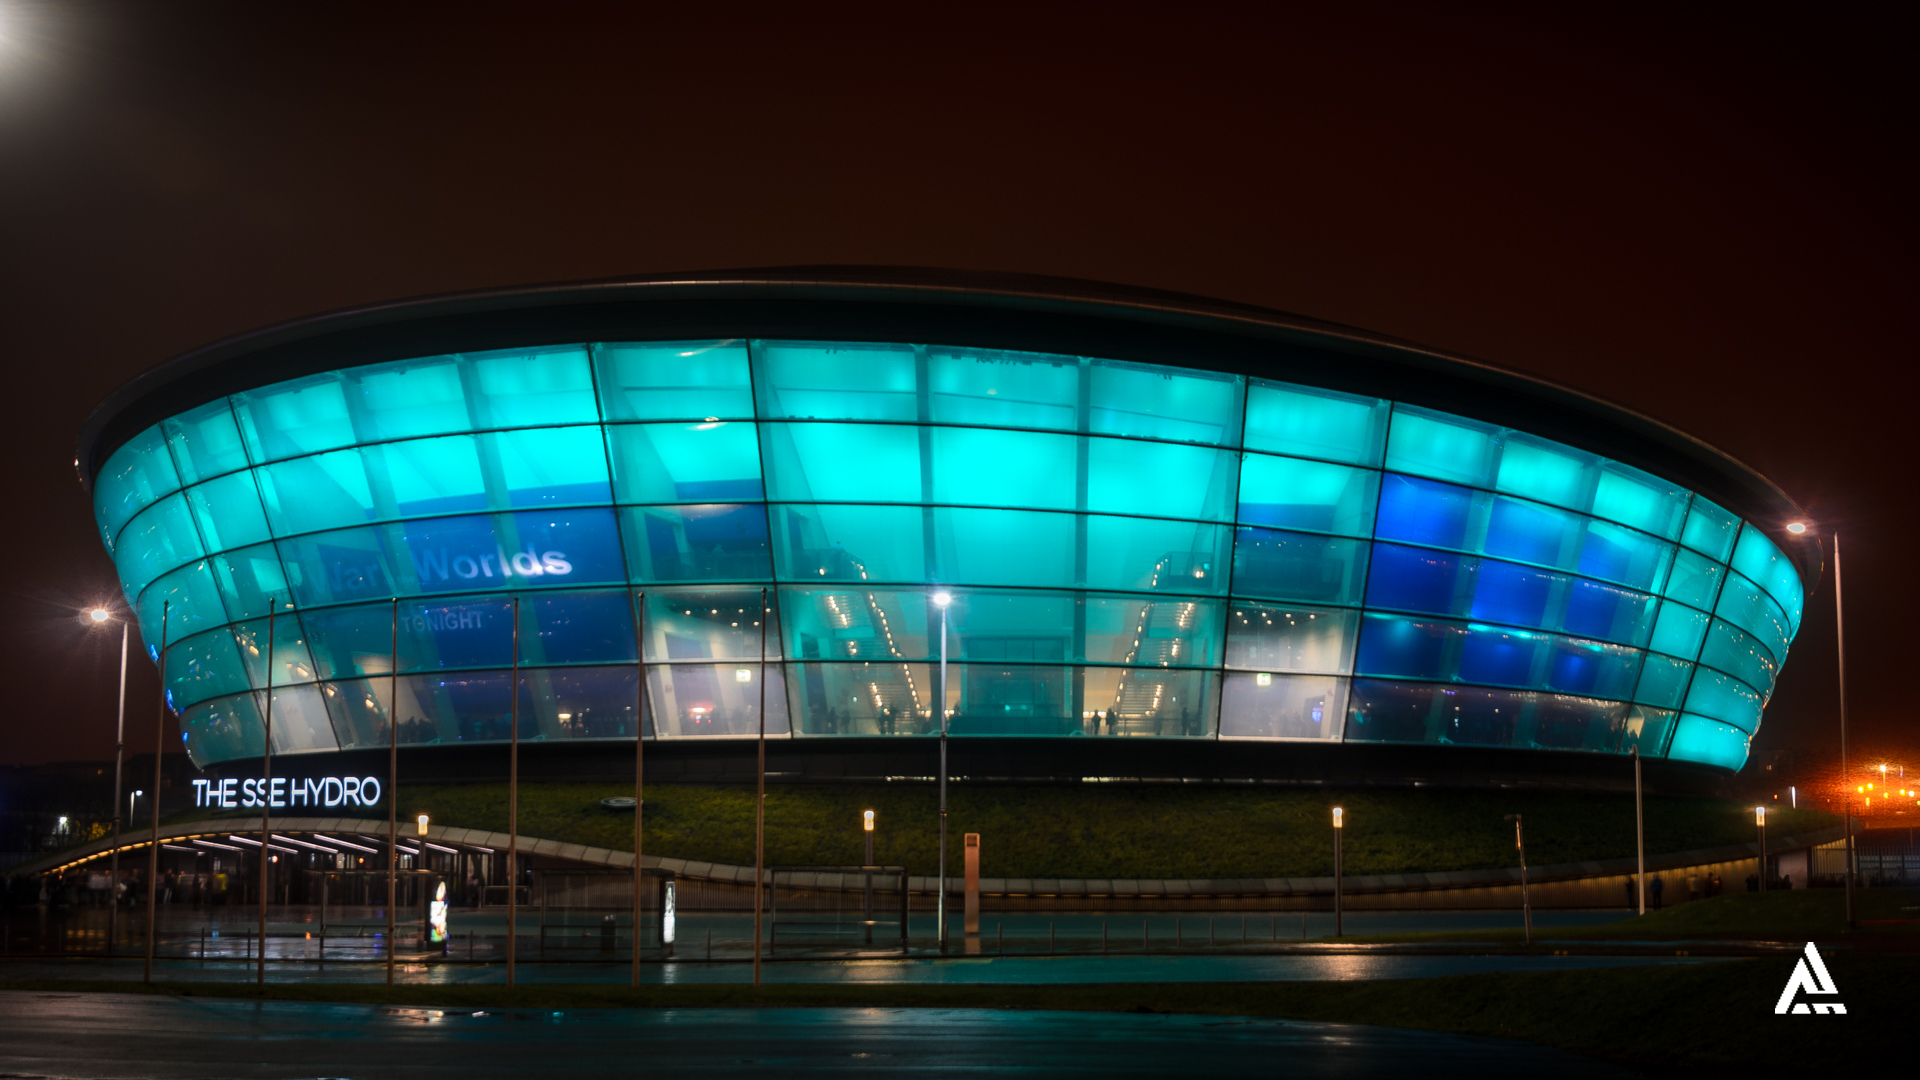 SSE Hydro - Arena in Glasgow - Thousand Wonders